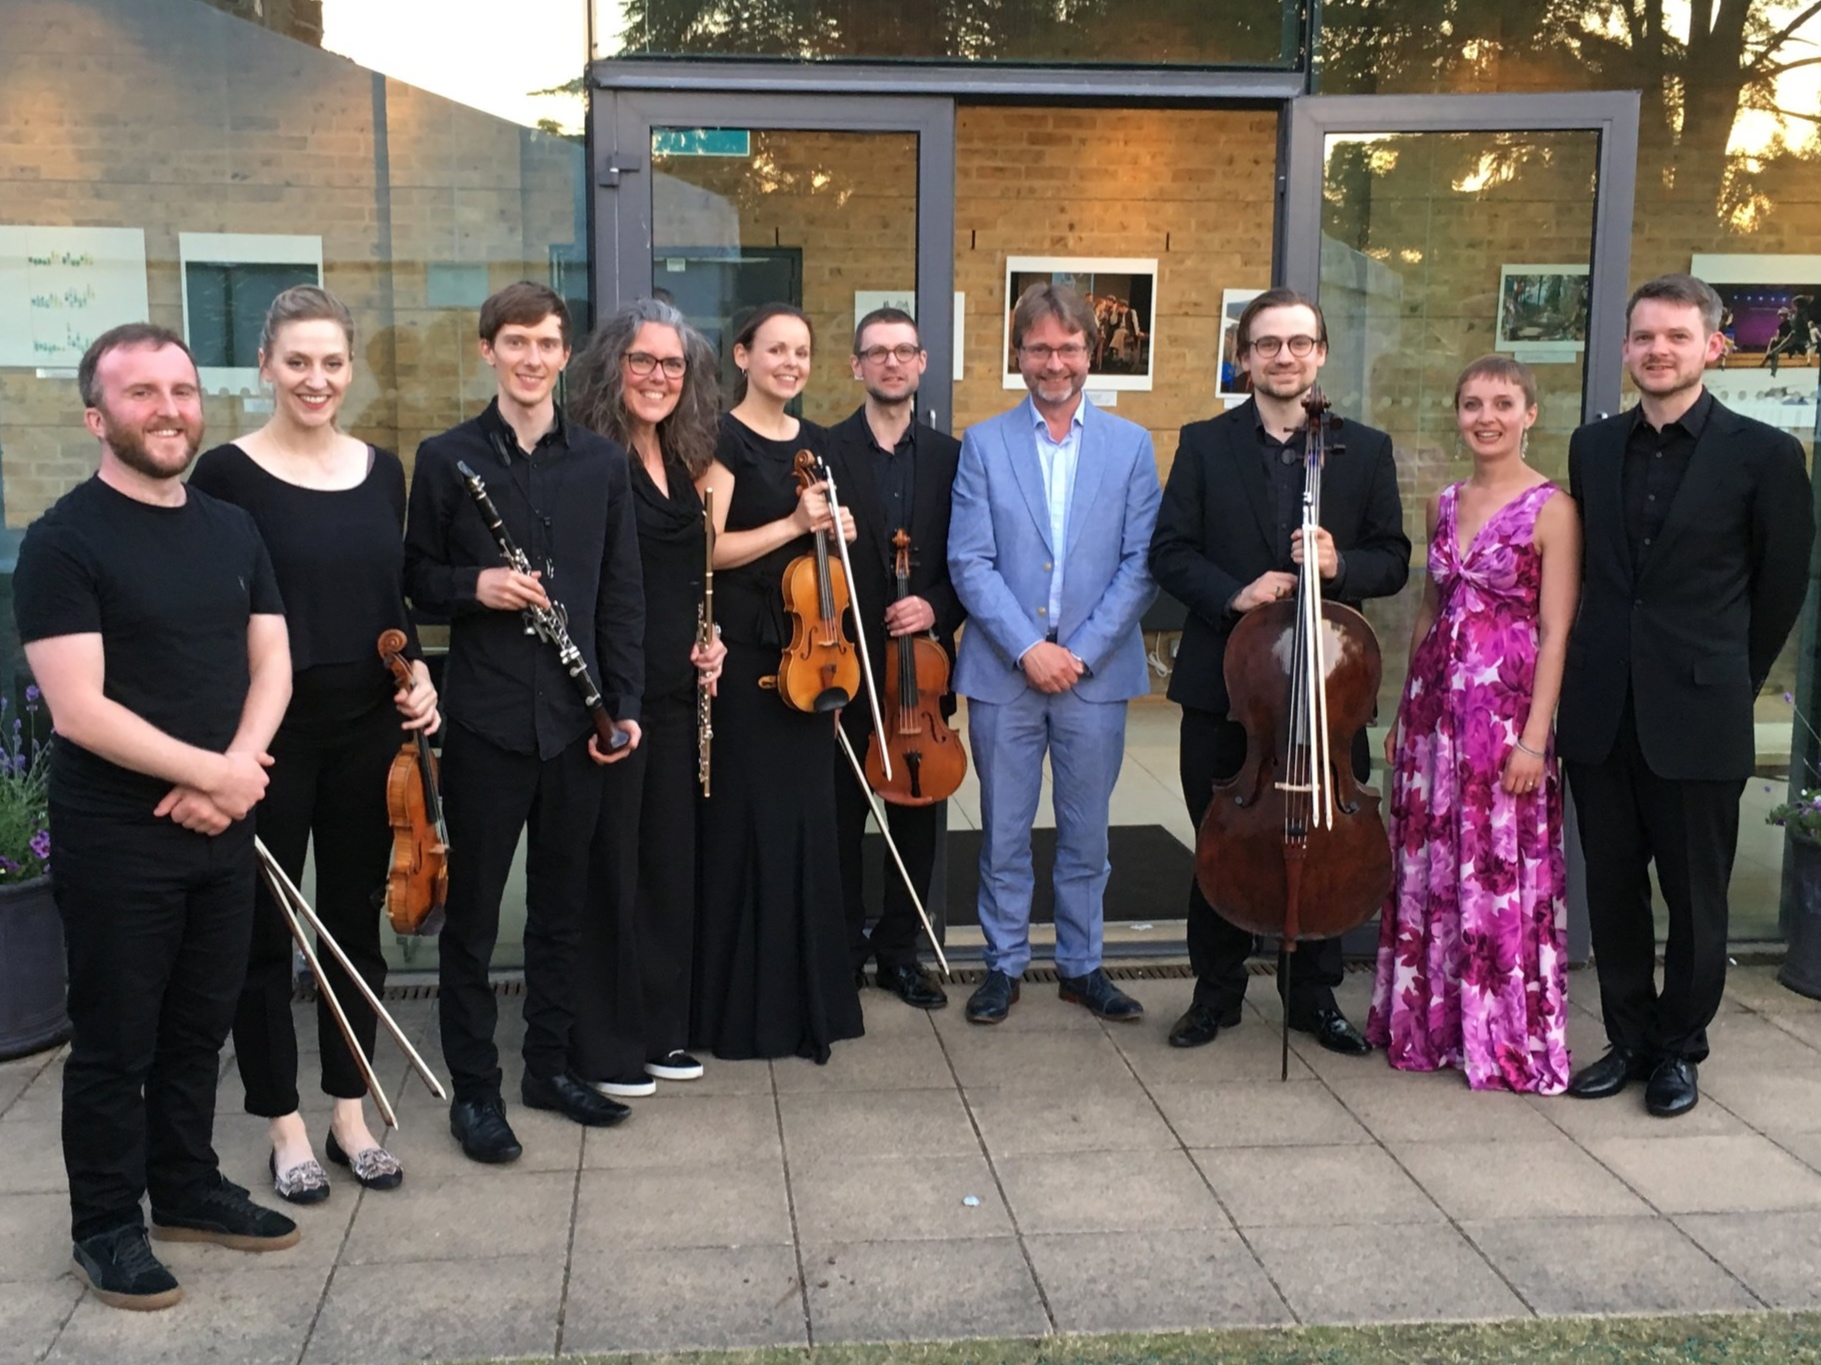 ELMG musicians with Paul Edlin and Katie Bray after the performance